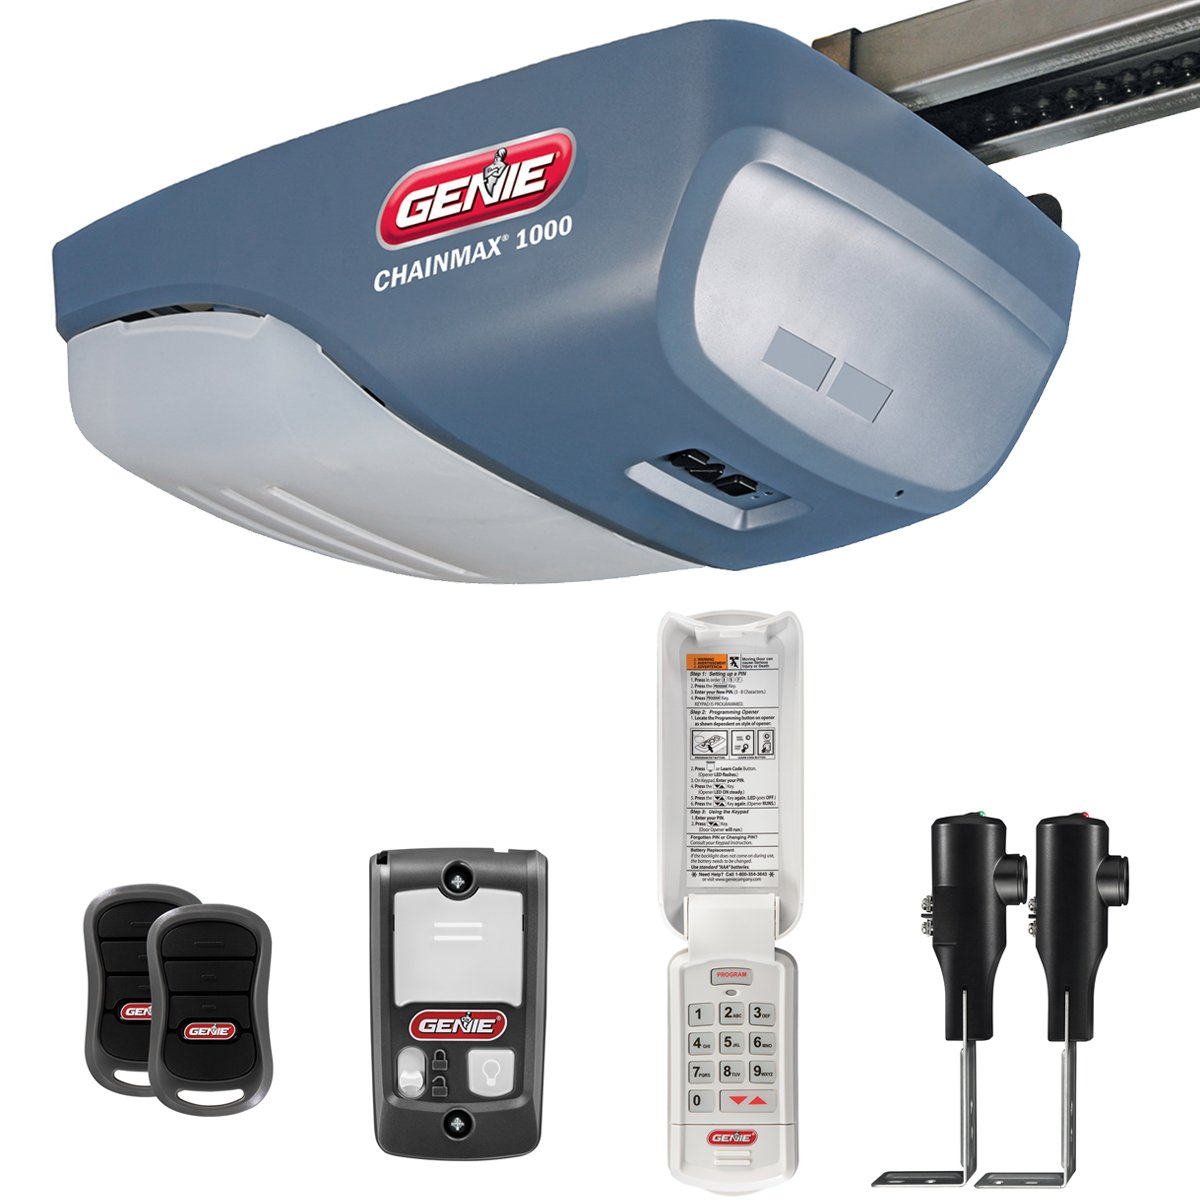 Genie chainmax 1000 garage door opener 34 hpc dc chain drive genie chainmax 1000 garage door opener 34 hpc dc chain drive opener with two 3 button pre programmed remotes wall console wireless keypad and rubansaba